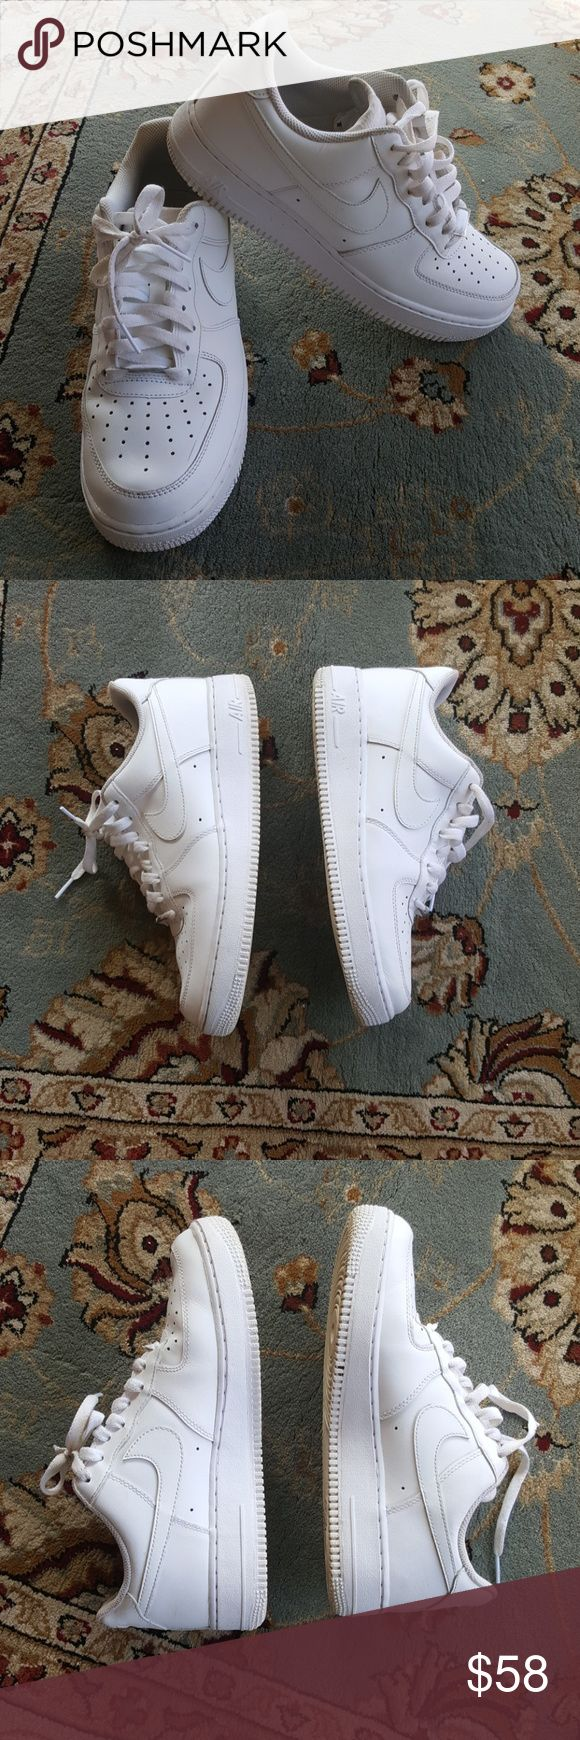 8 all white air force one's af1 Great condition women's size 8 all white Air Force Ones some dirt on the bottom of the souls. But no toe creasing one minor scuff shoe laces are in good condition somewhere inside the shoe but no picking from socks. Nike Shoes Sneakers